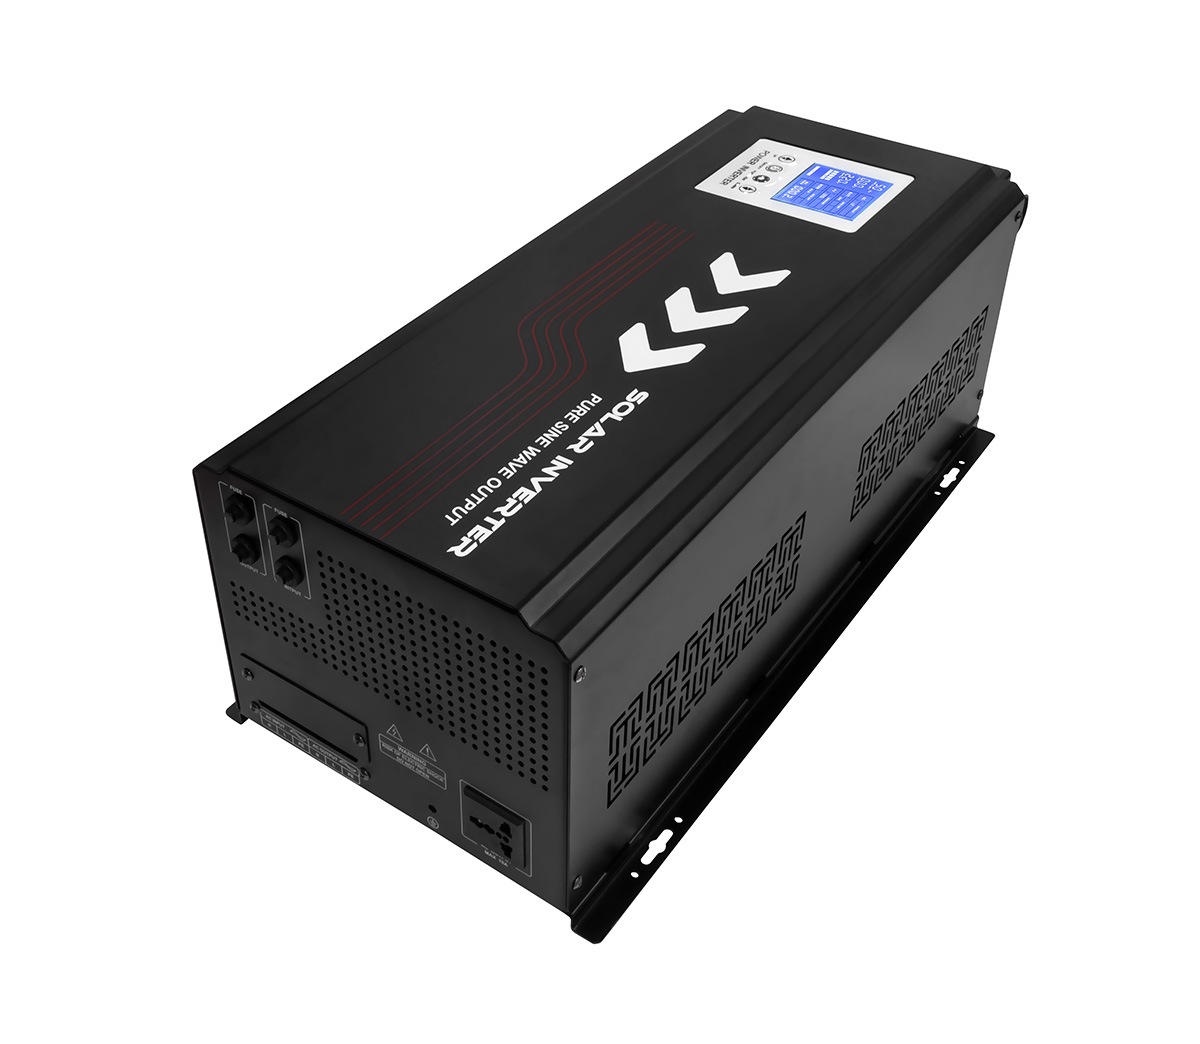 W10 Inverter Charger / Solar Inverter Charger (4000W-7000W)